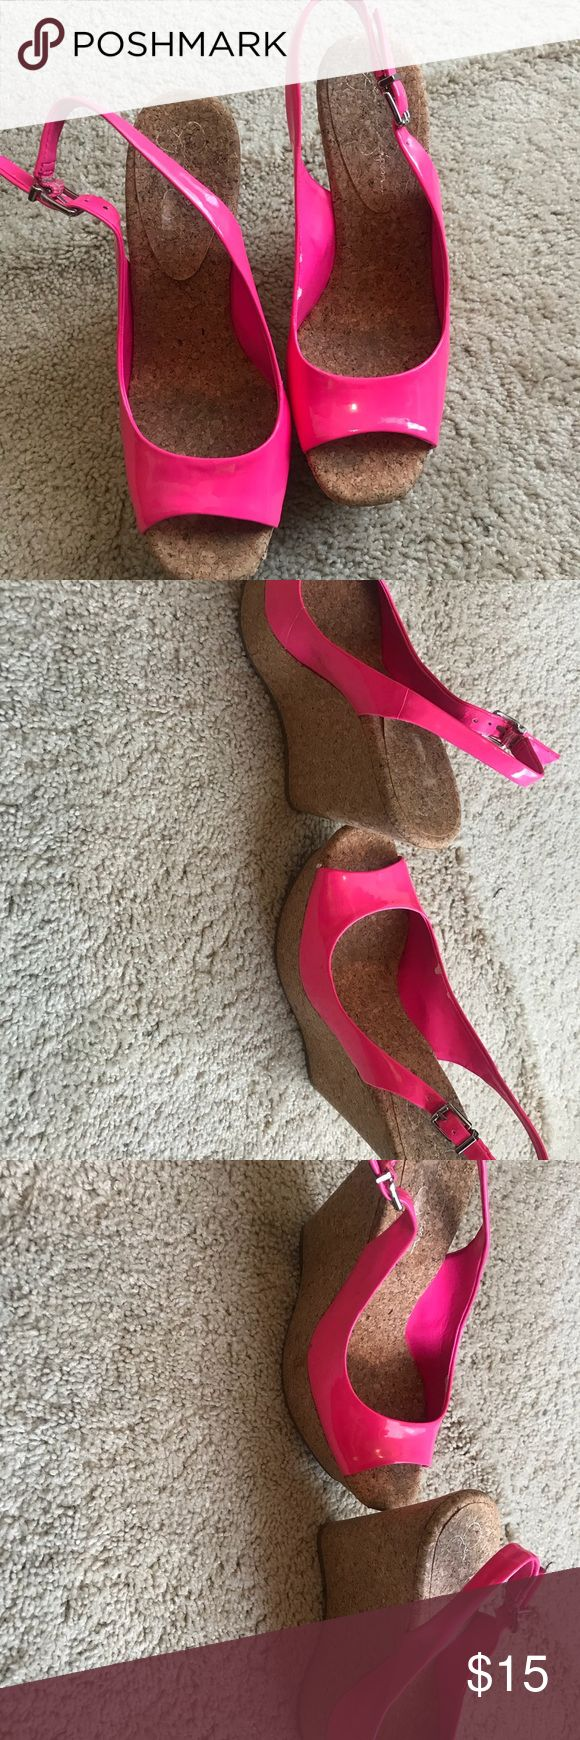 Jessica Simpson , hot pink wedges Jessica Simpson, hot pink wedge  Size 8  Like new Jessica Simpson Shoes Wedges